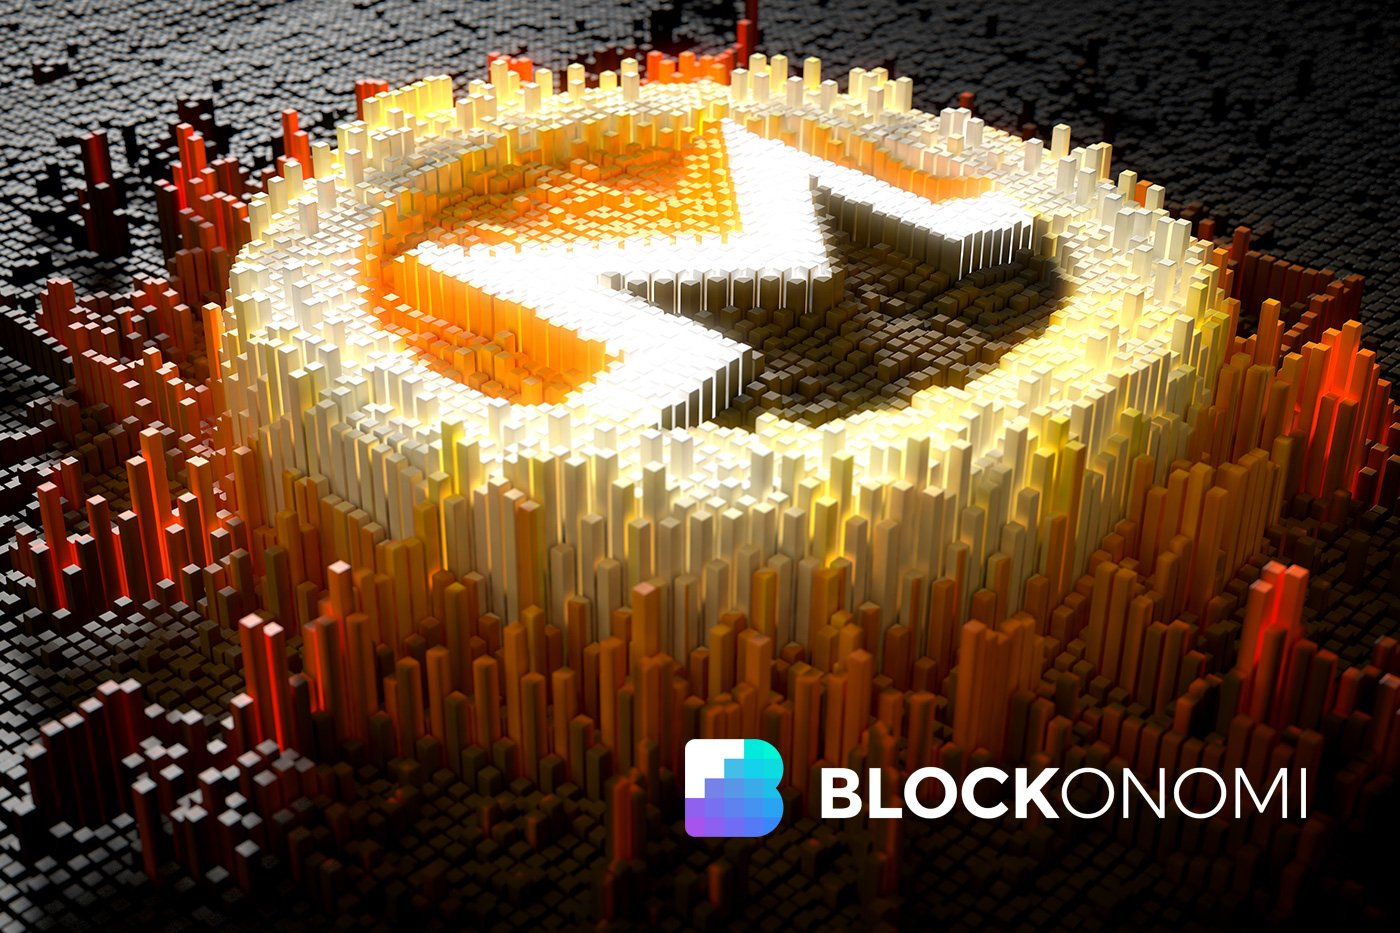 Monero To Hard Fork Blockchain In March To Stifle XMR ASIC Miners